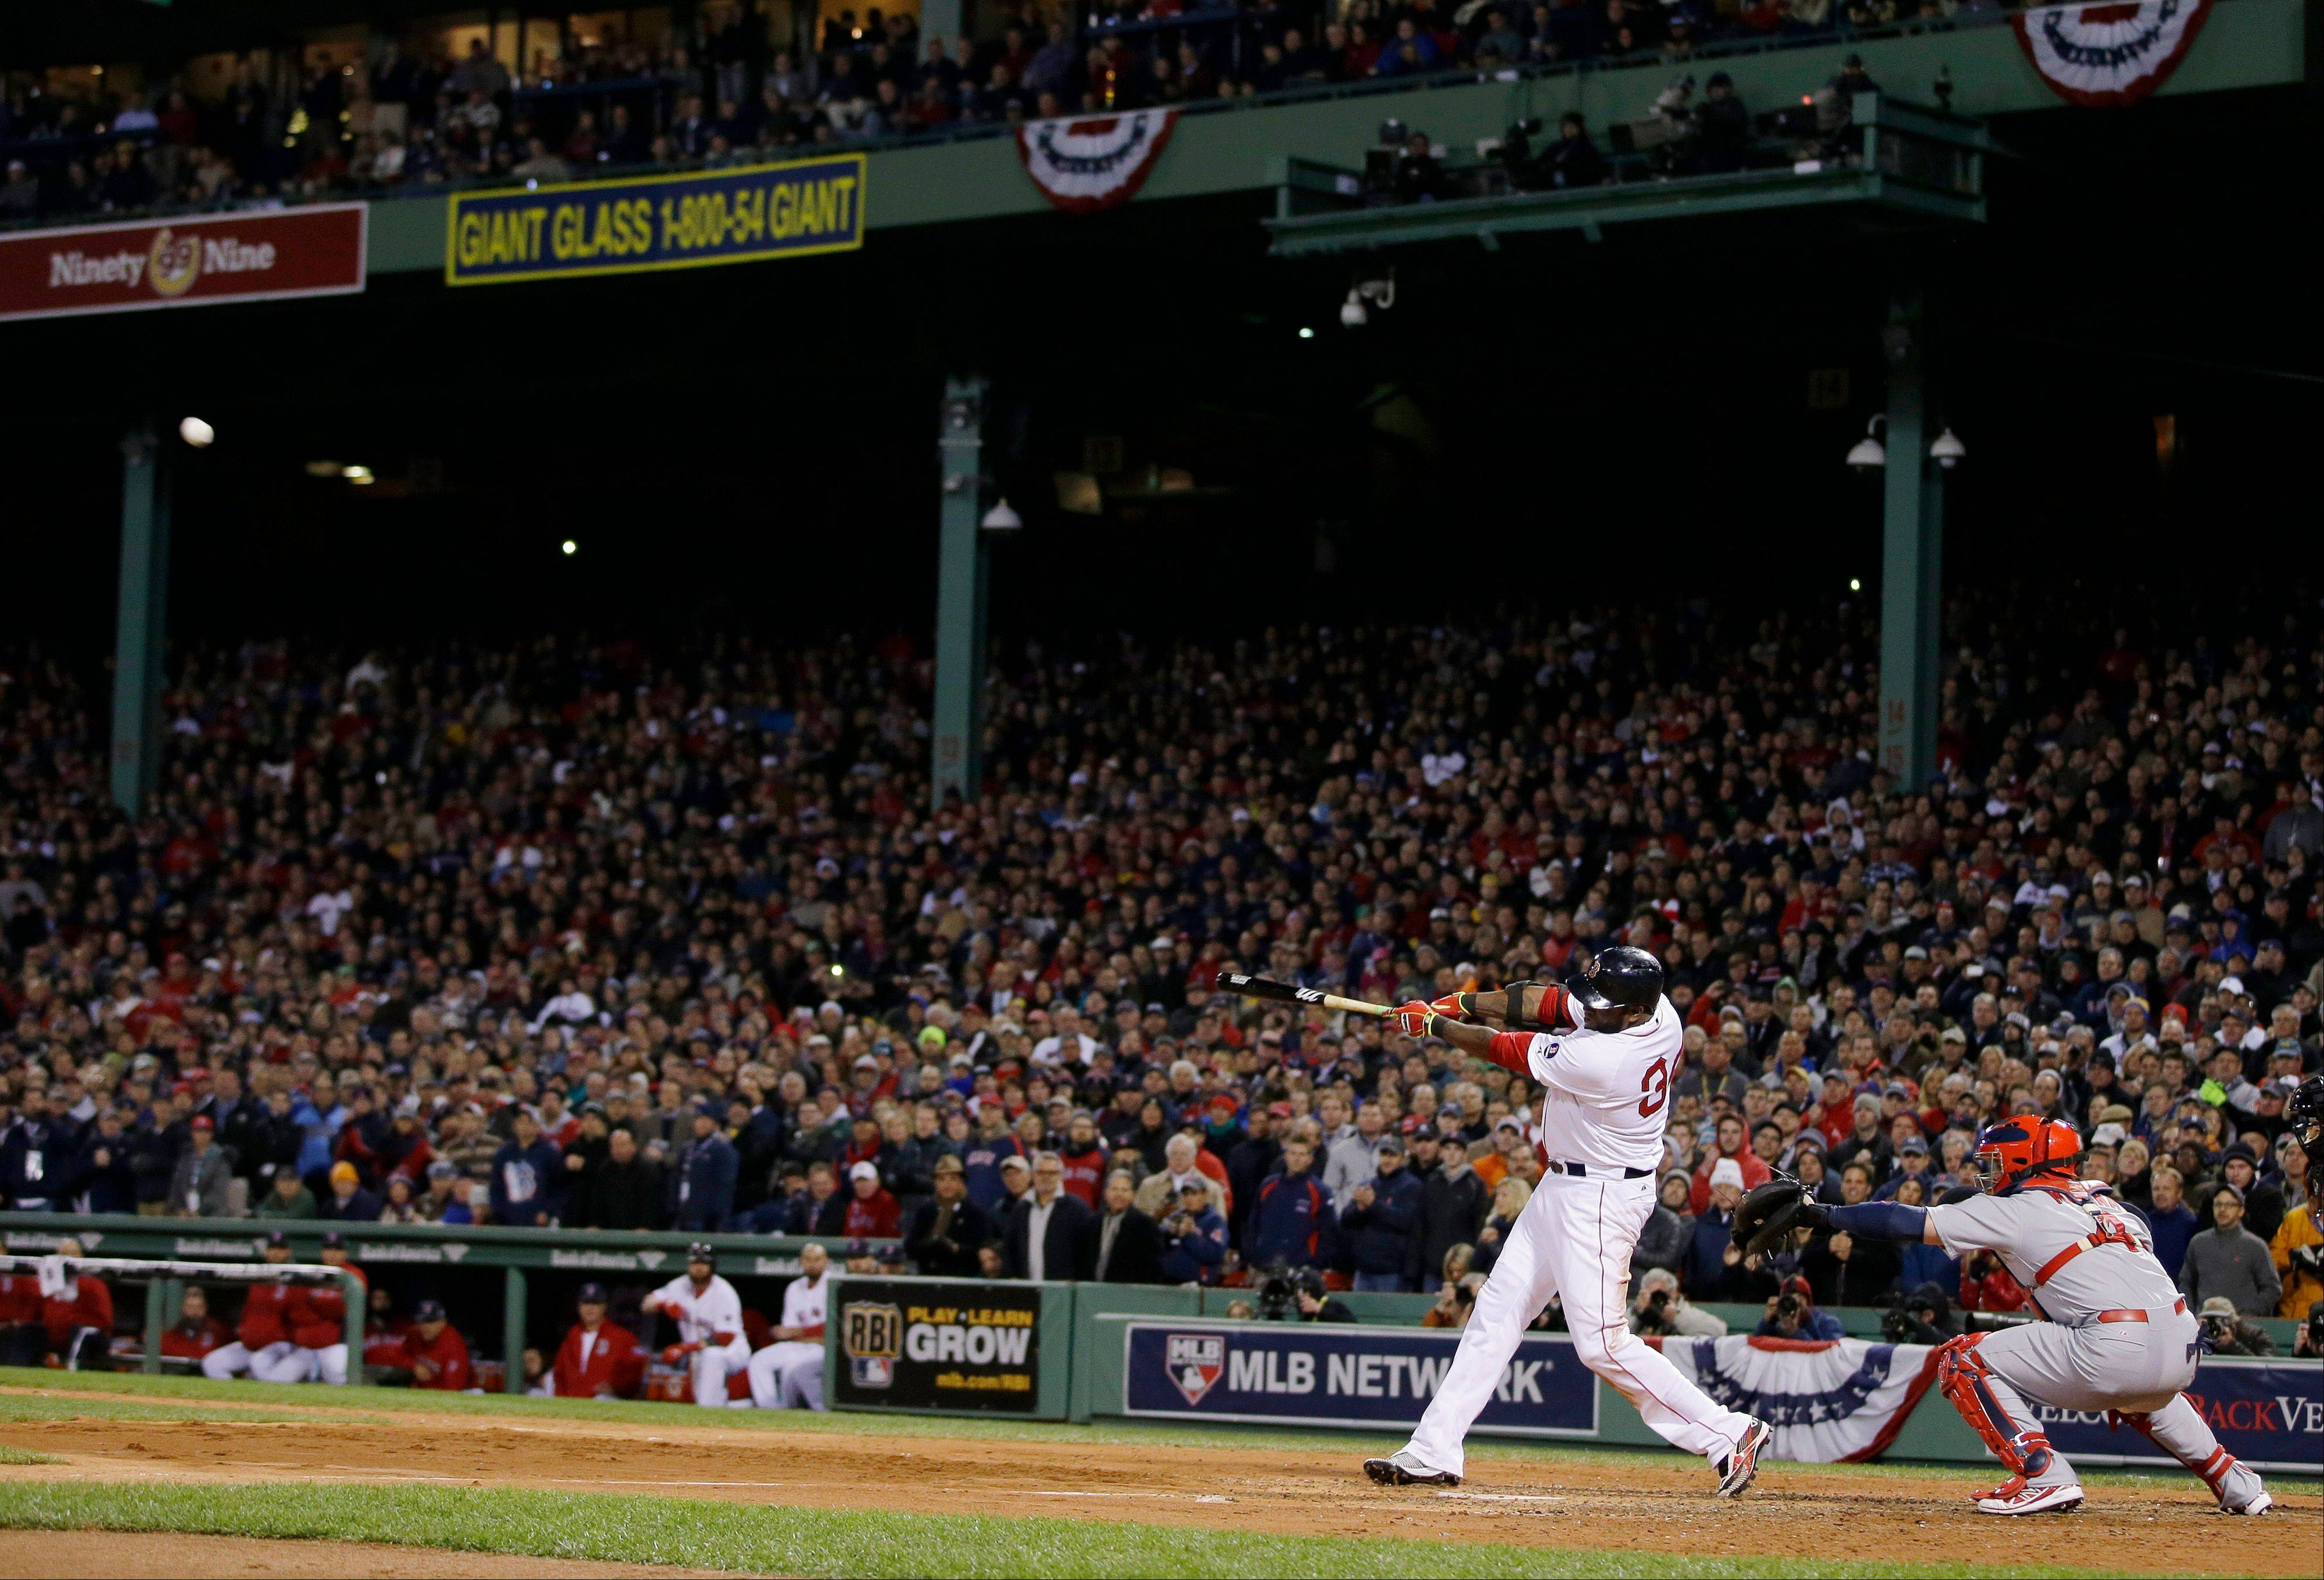 Boston's David Ortiz launches a two-run home run during the sixth inning of Game 2.